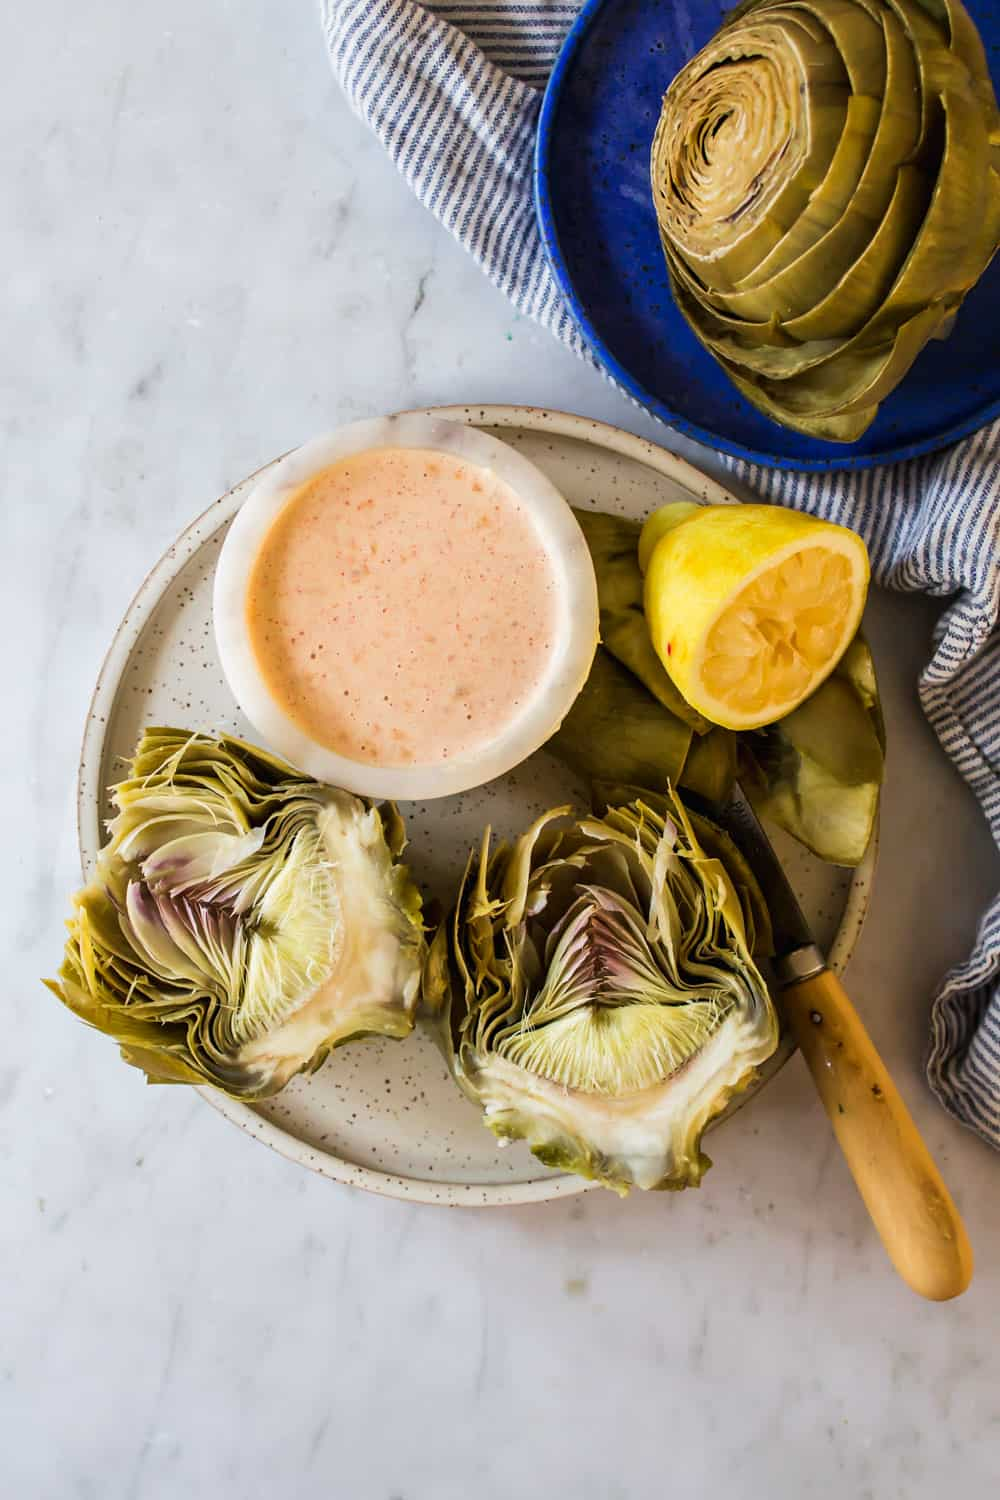 halved artichokes on a white plate next to dipping sauce and lemon